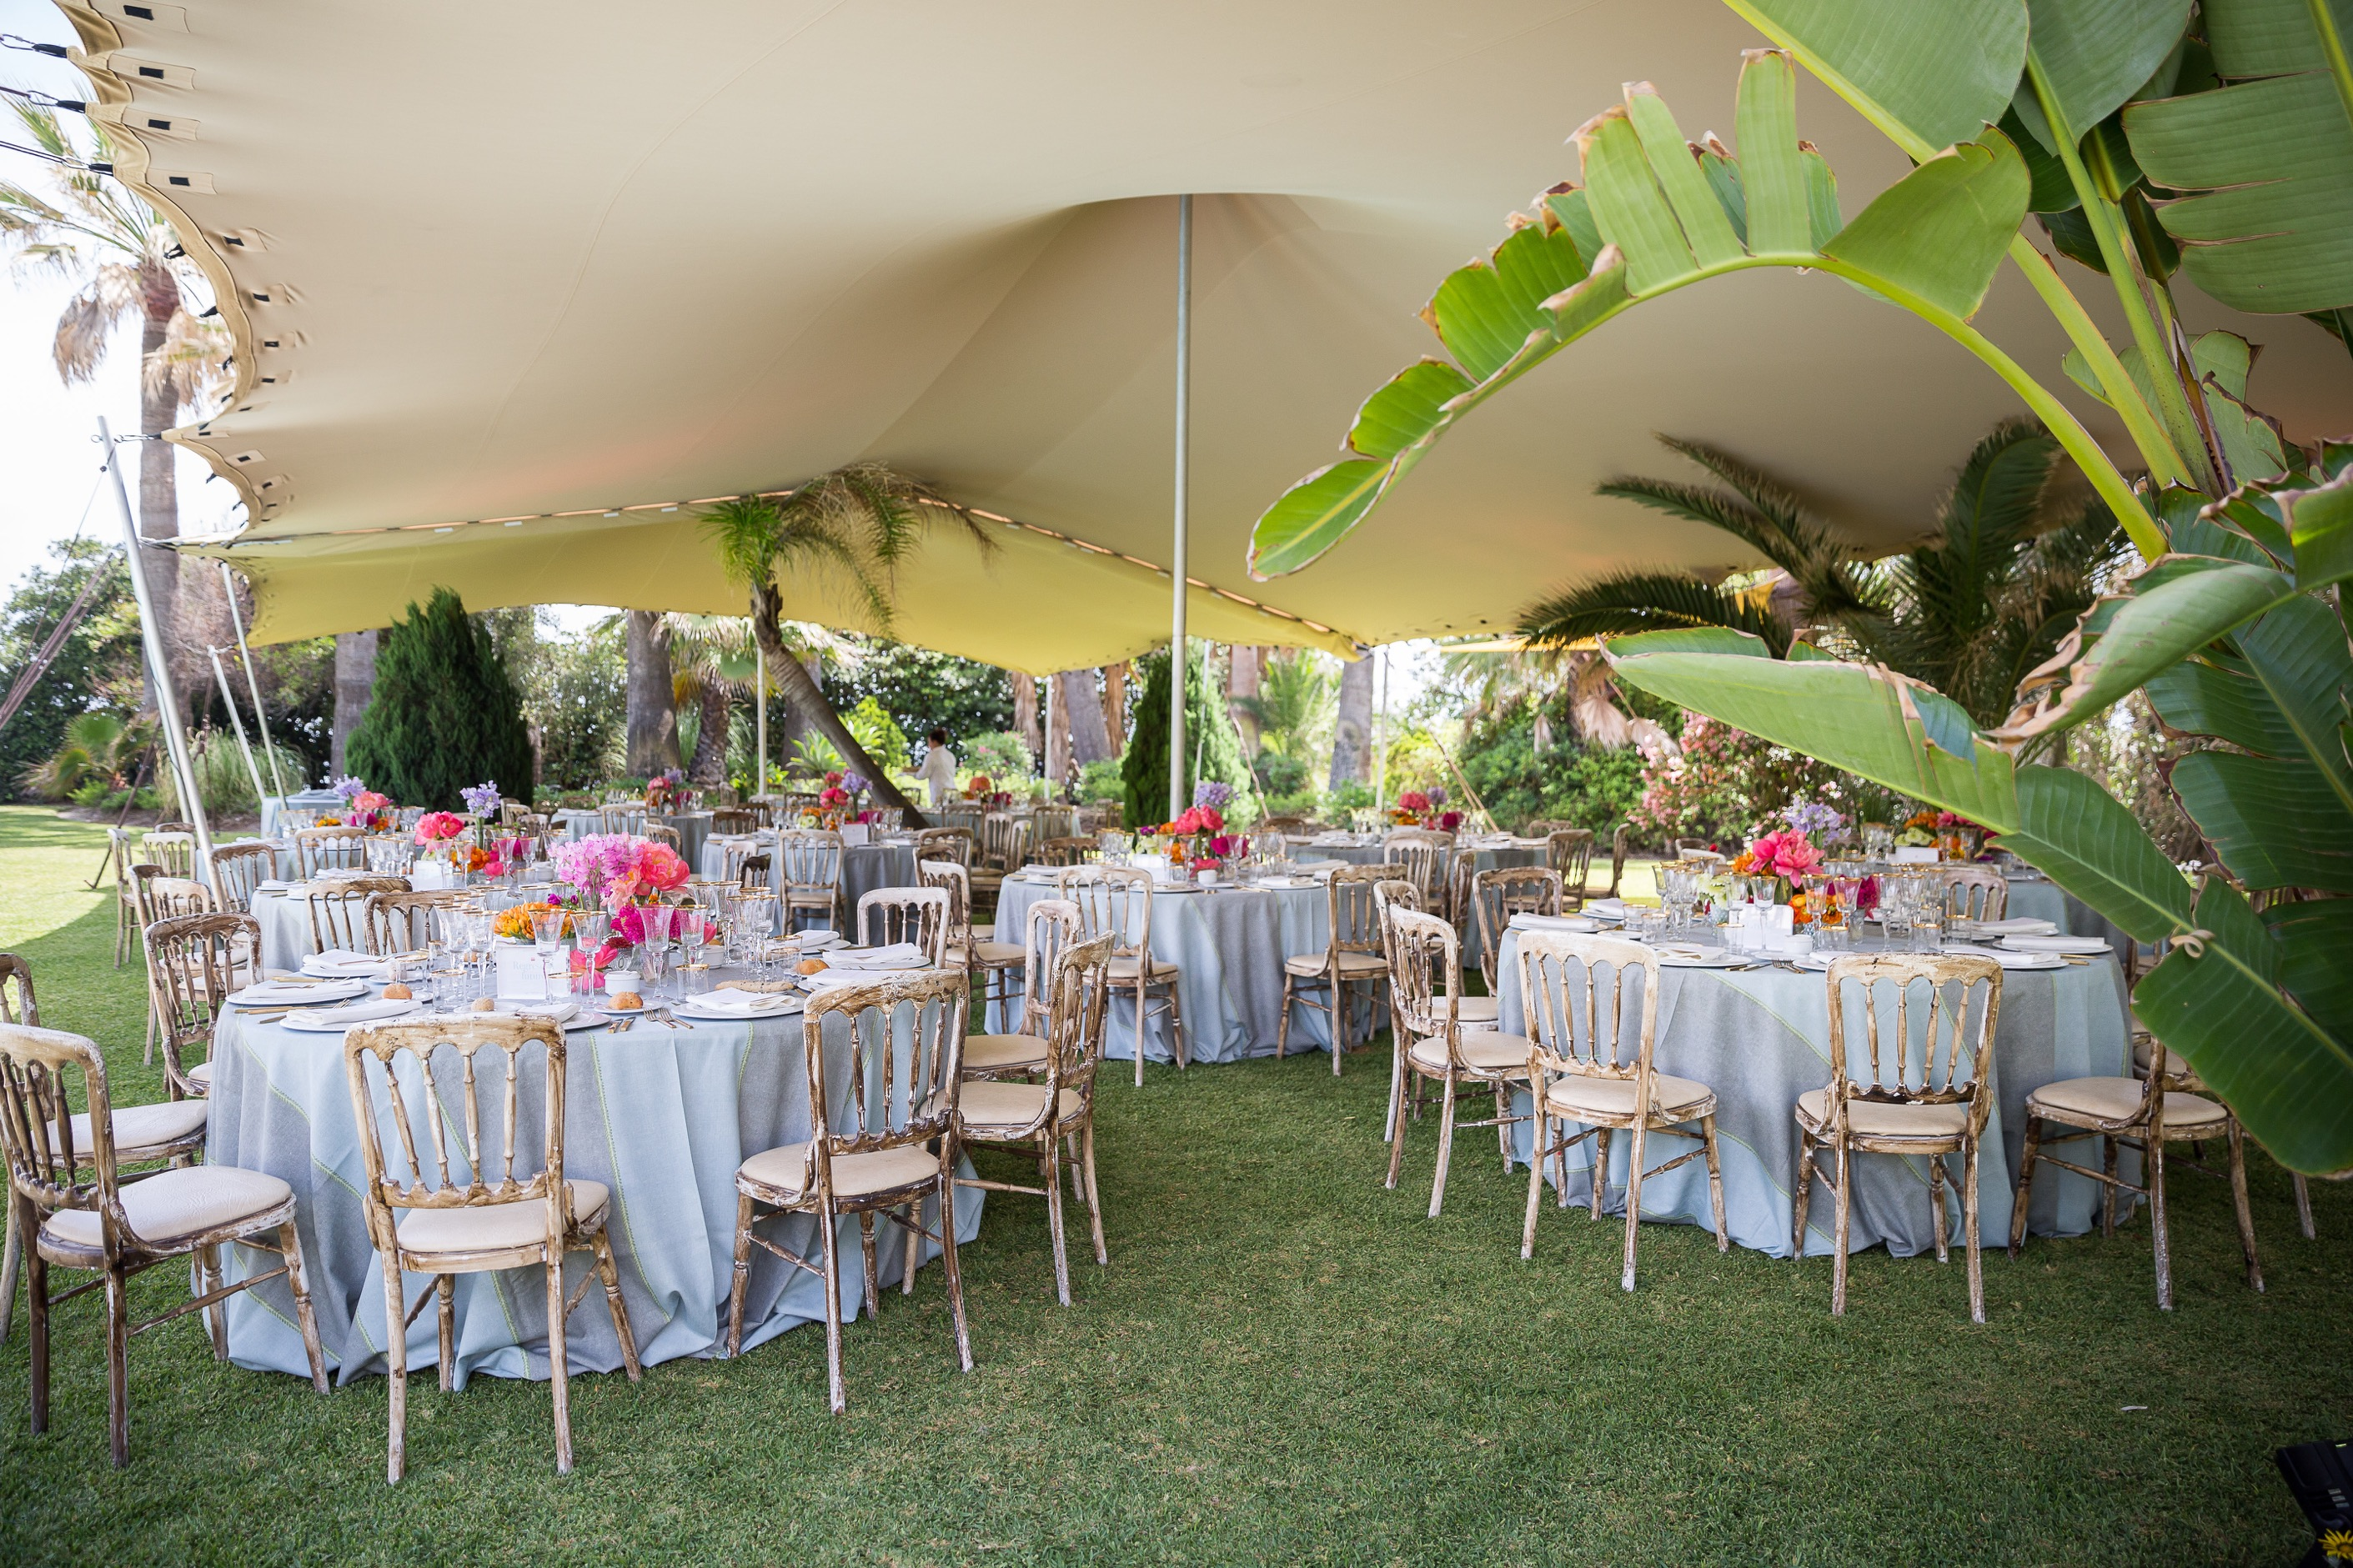 Si-Quiero-Wedding-Planners-Marbella-Isabel-Manolo-109